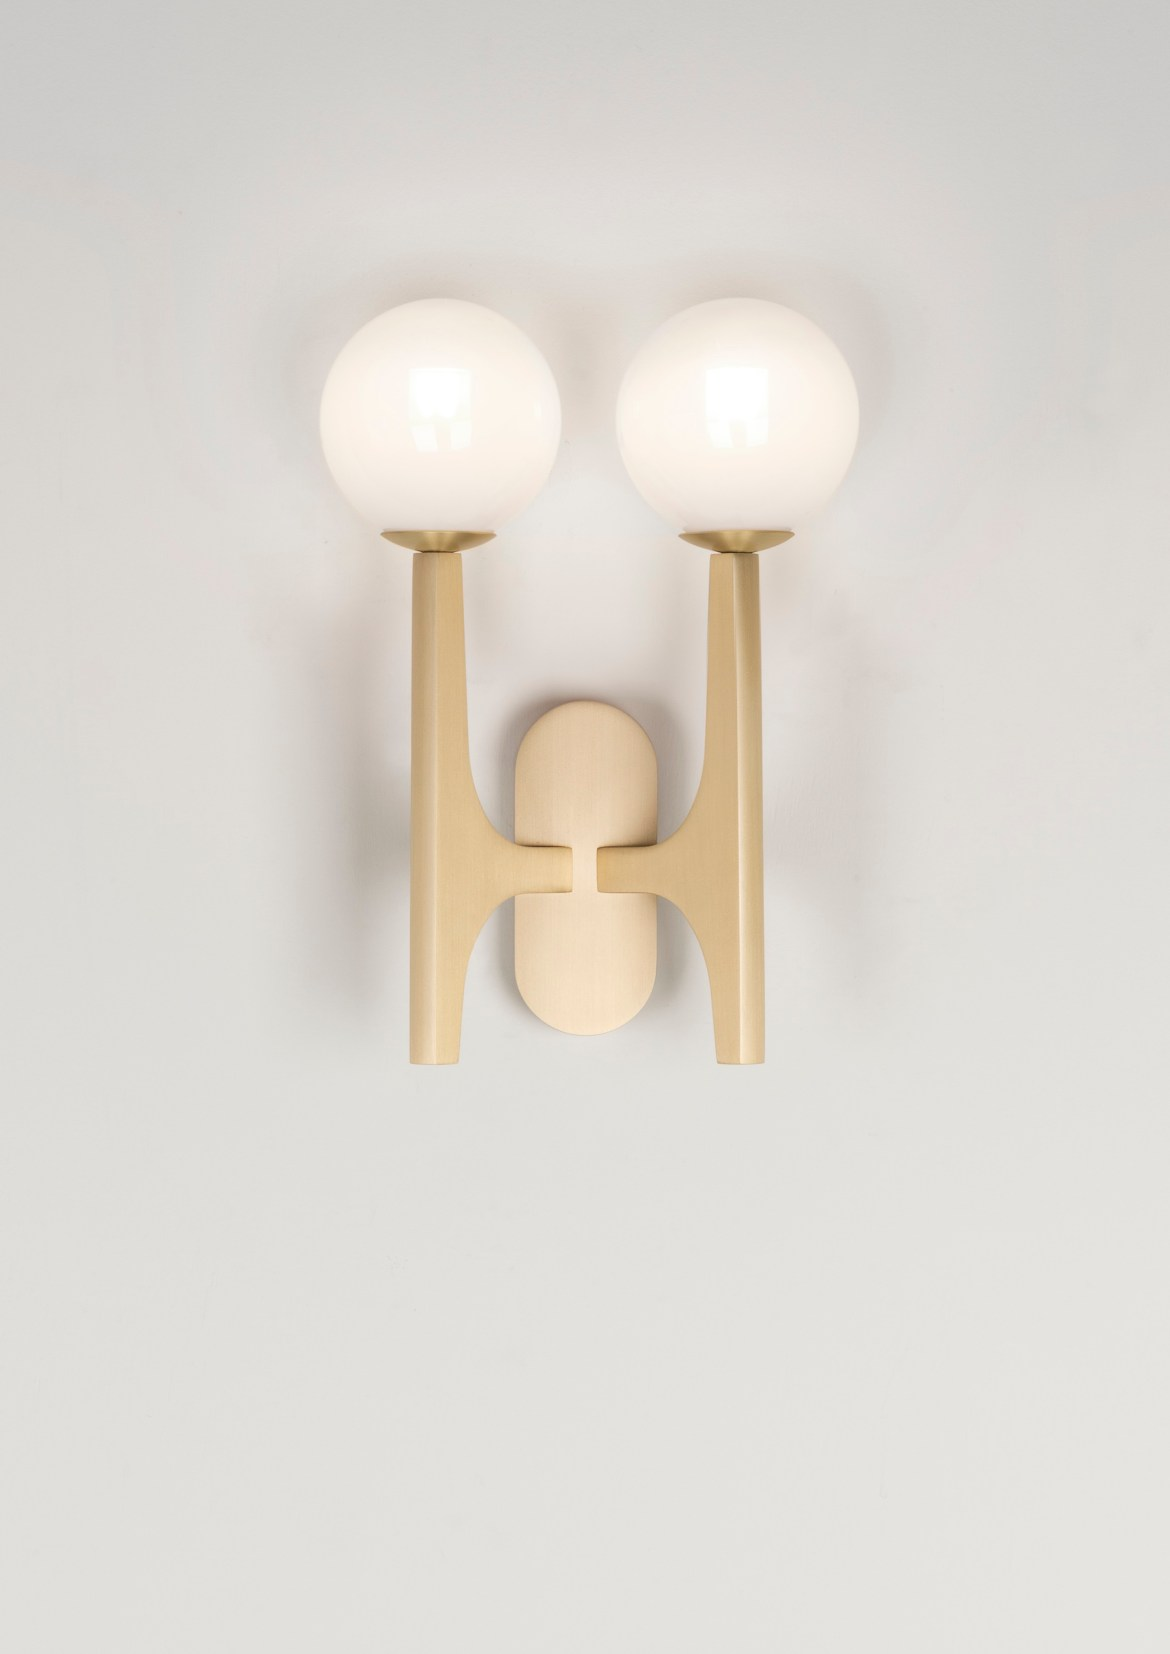 On the occasion of Maison&Objet and Paris Déco Off 2019, designer Damien Langlois-Meurinne designed brass sconces for Pouenat.